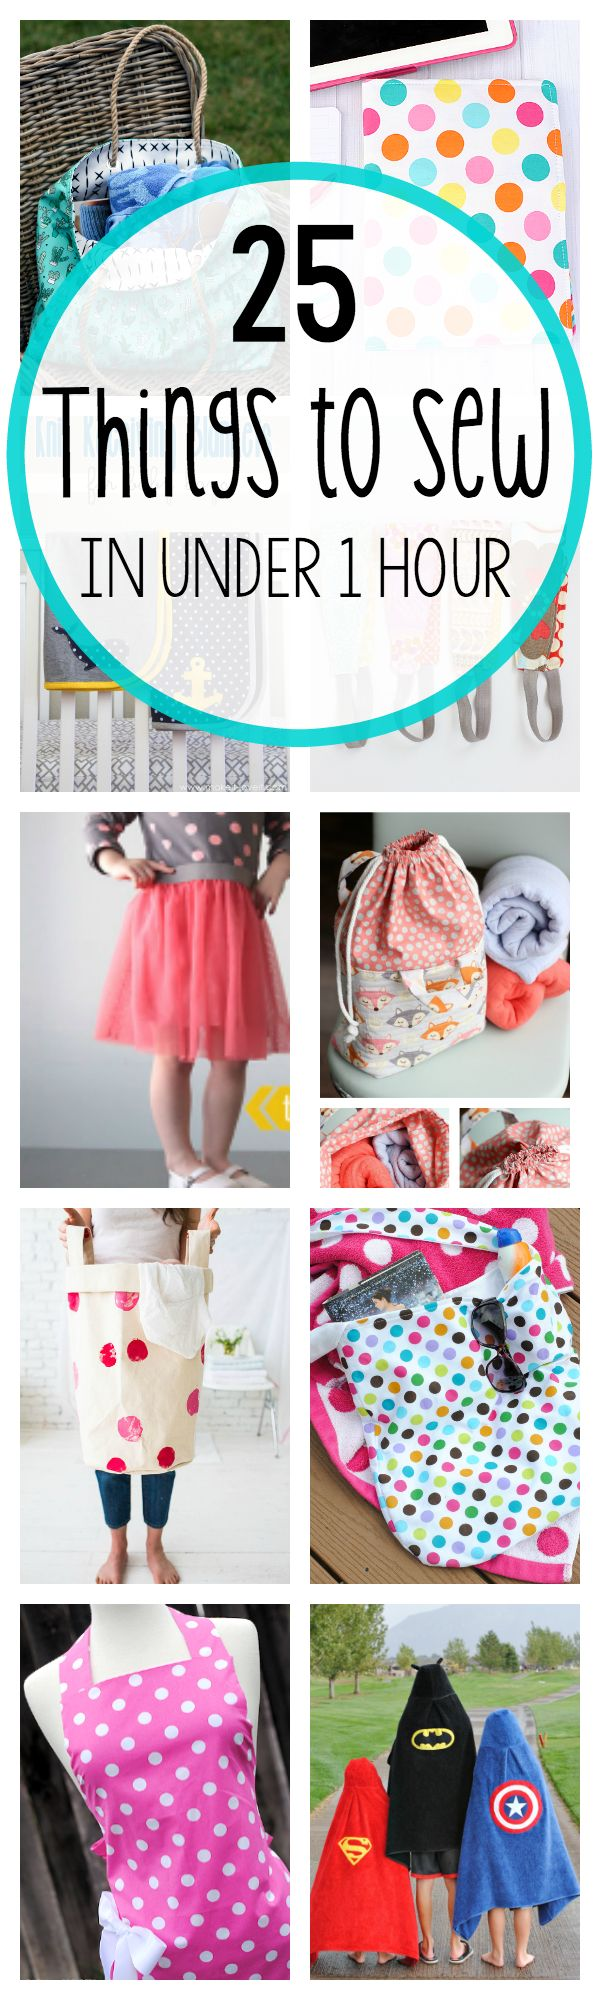 25 Things to Sew in Under 1 Hour                                                                                                                                                     More